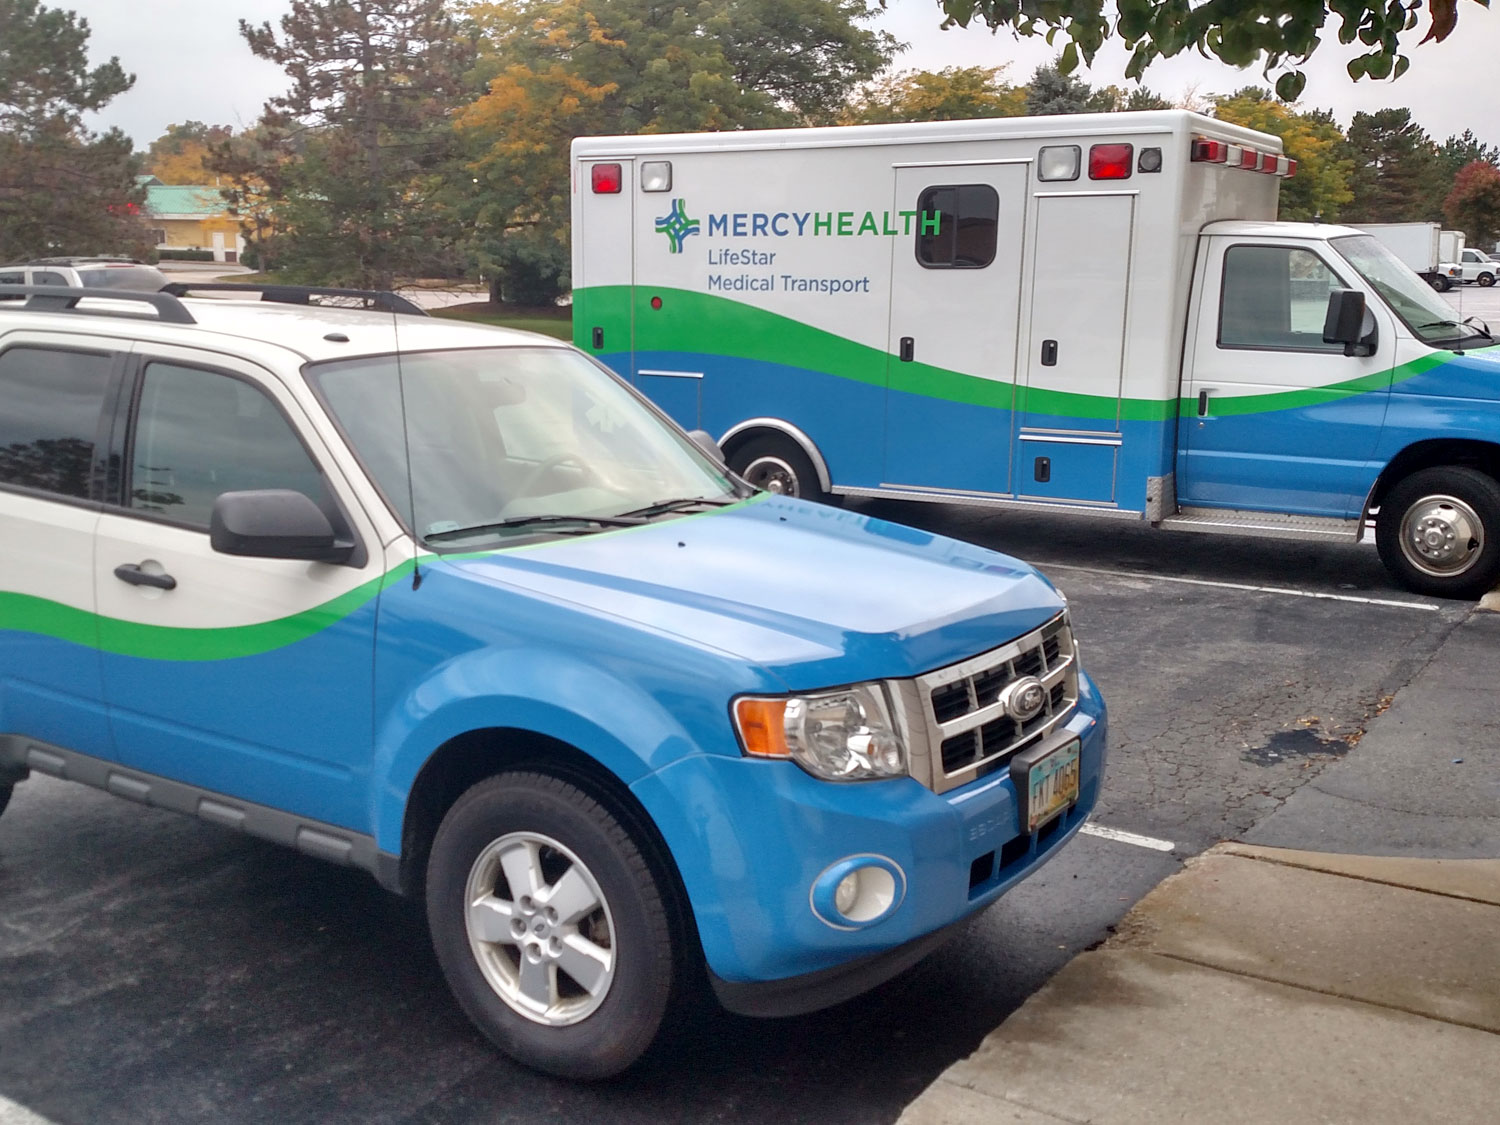 Mercy Health Ambulance and Vehicle Graphics